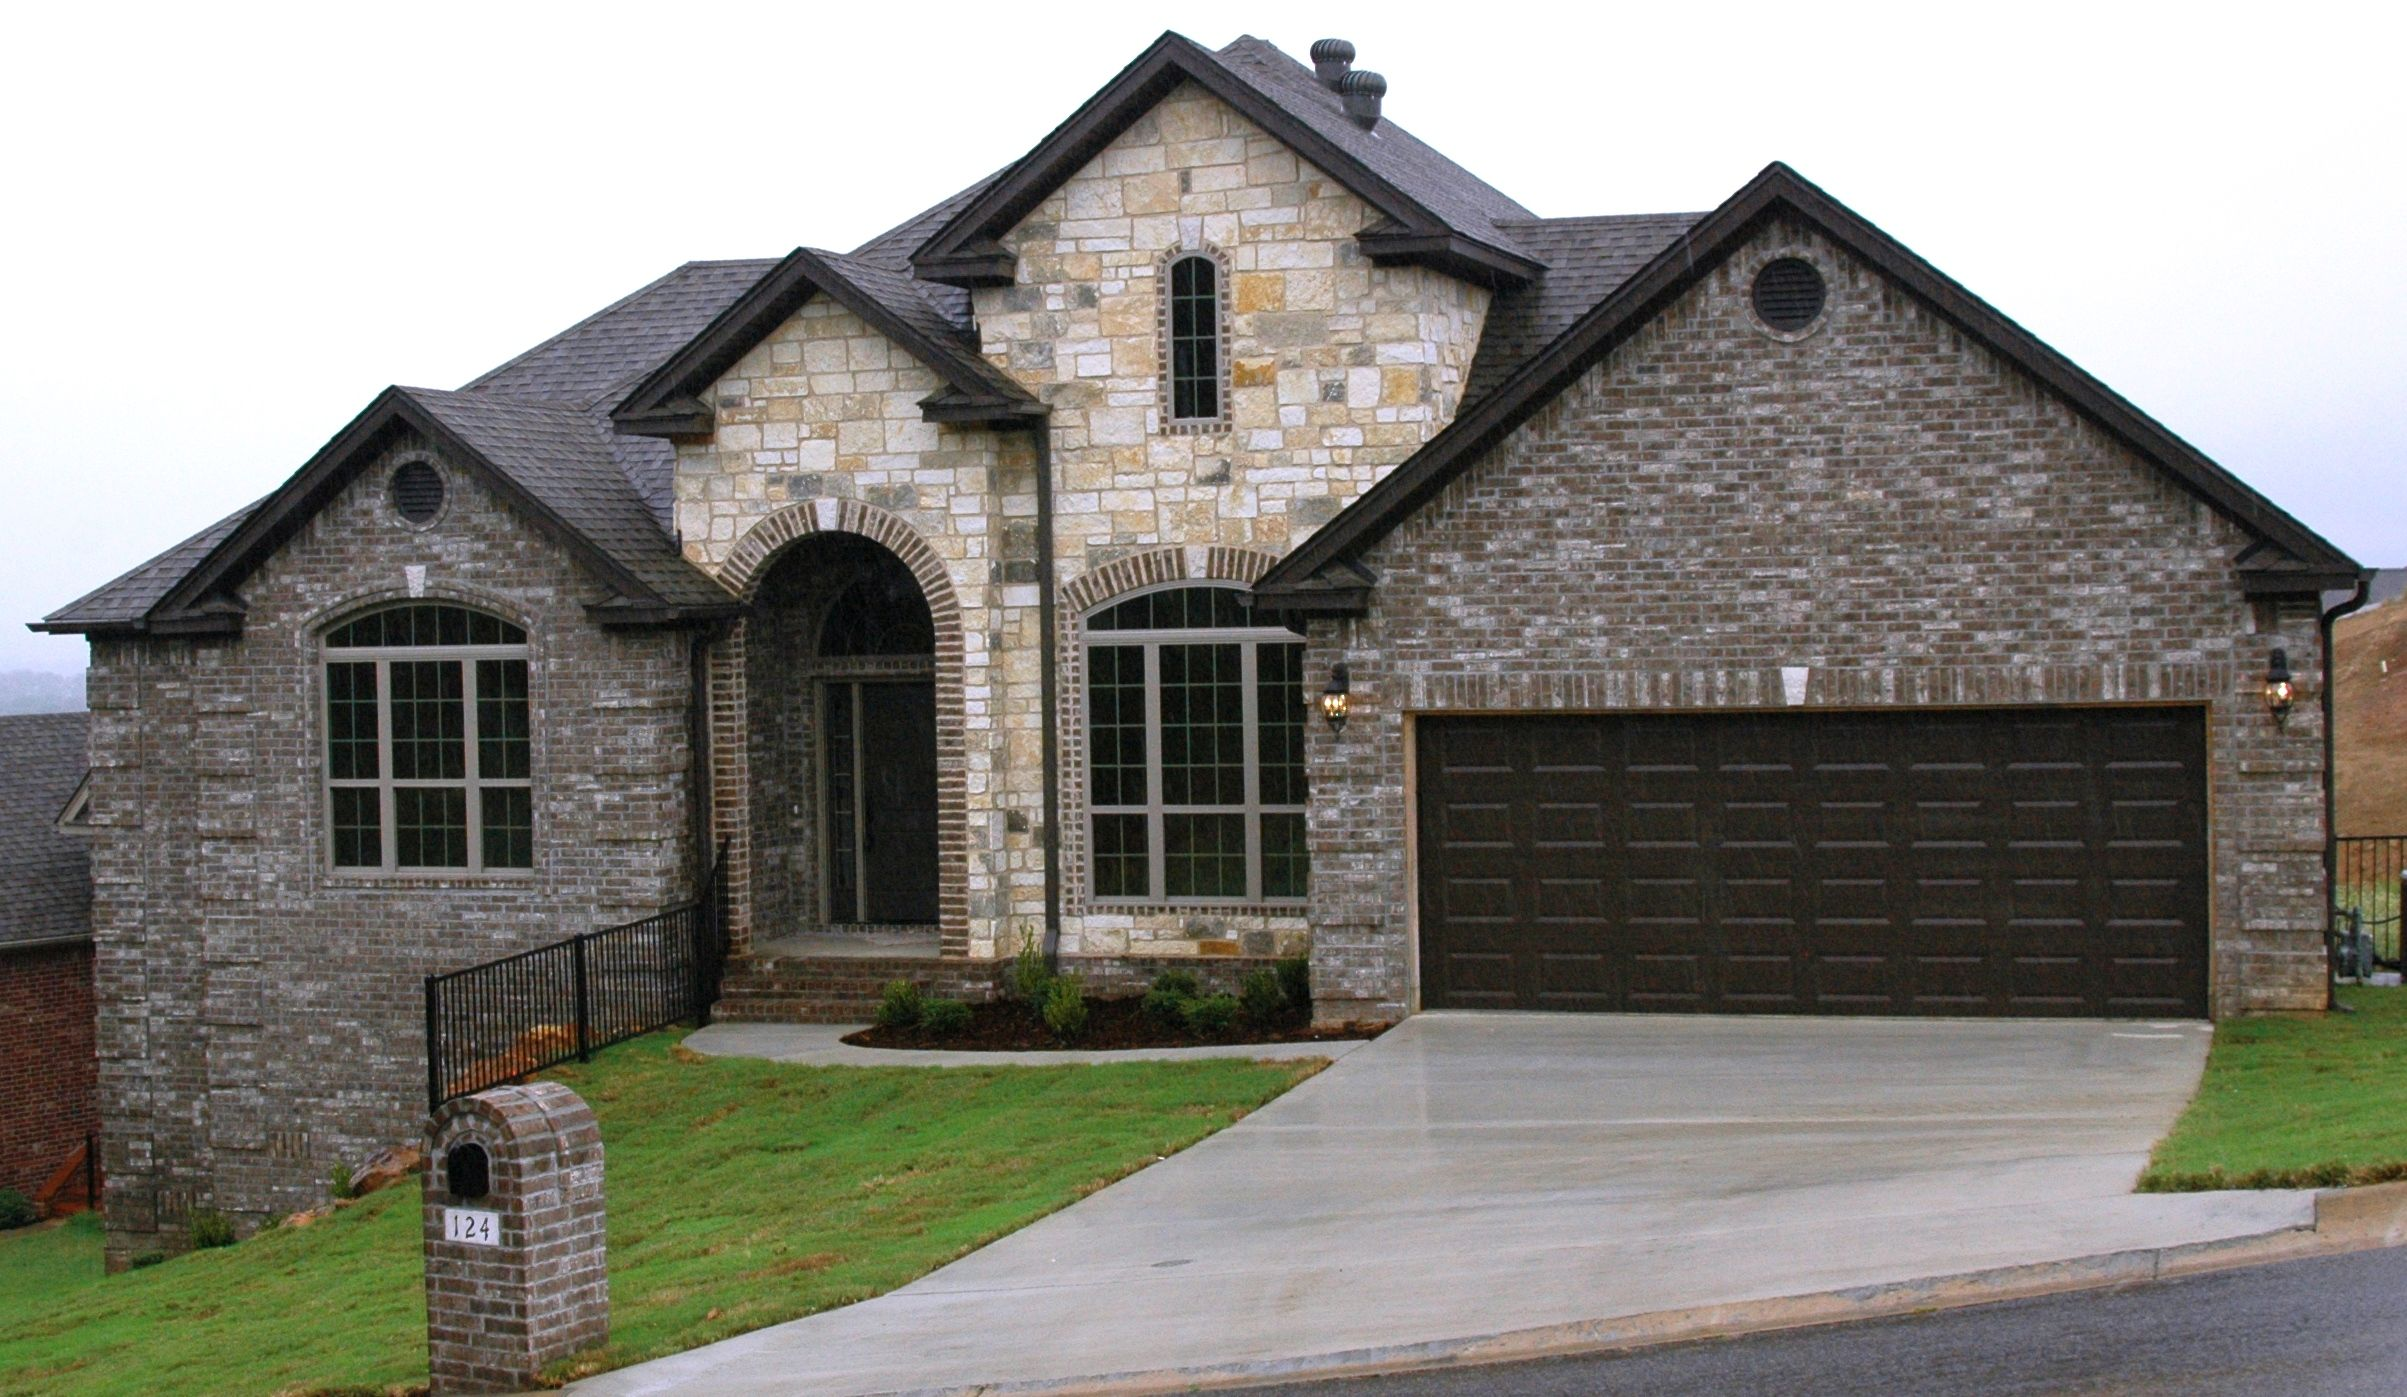 Little rock houses for sale and little rock real estate for Home builders in arkansas